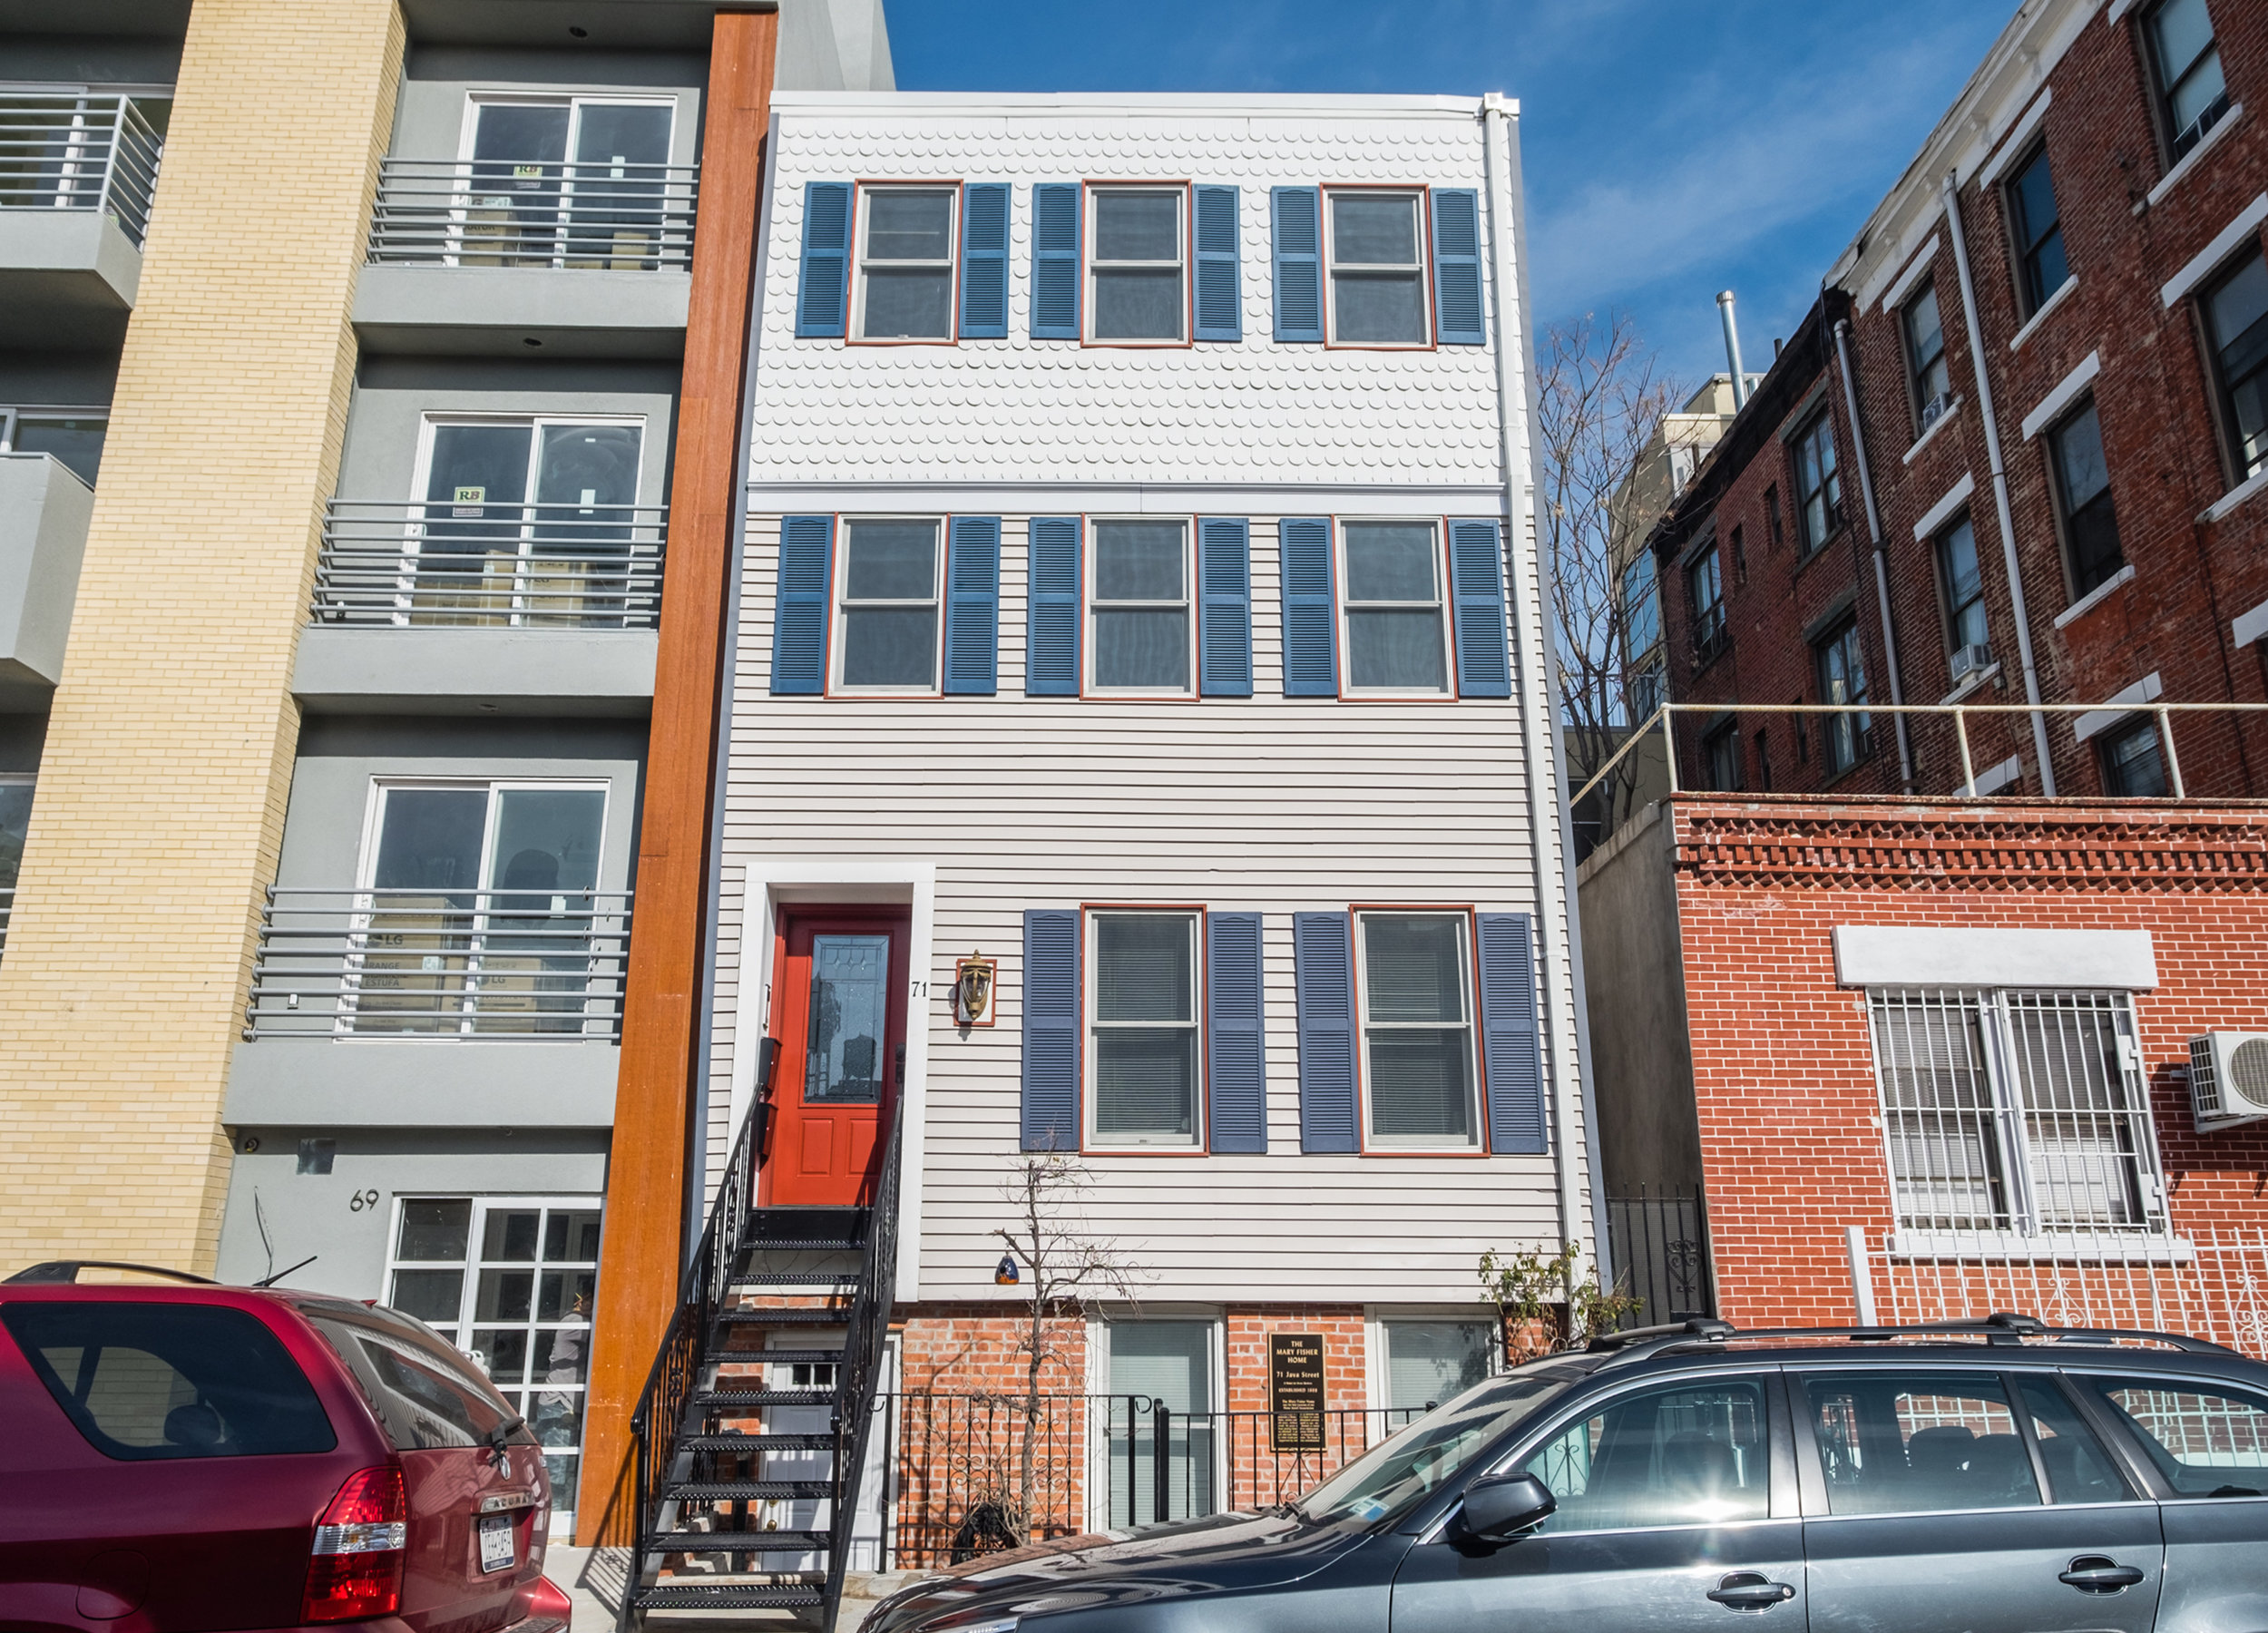 71 Java St, 2-Family Townhouse   Greenpoint, Brooklyn   $2,100,000  5 Beds | 4.5 Baths | 2,280 SF